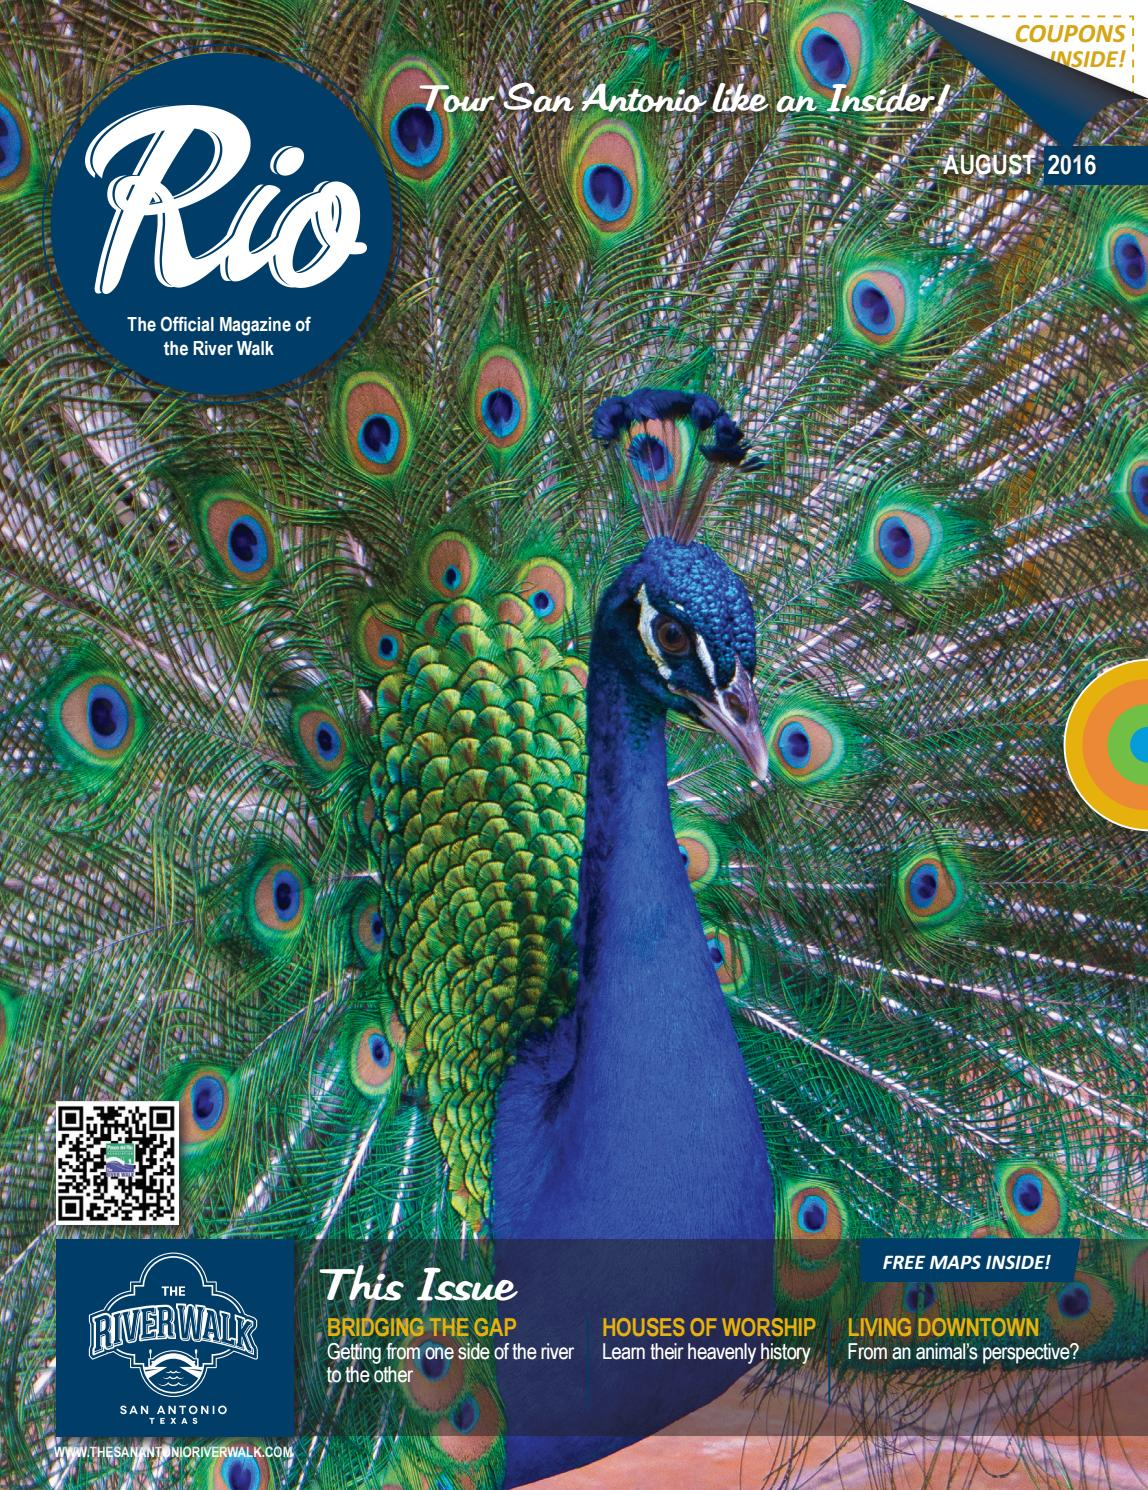 rio magazine august 2016 by traveling blender - issuu